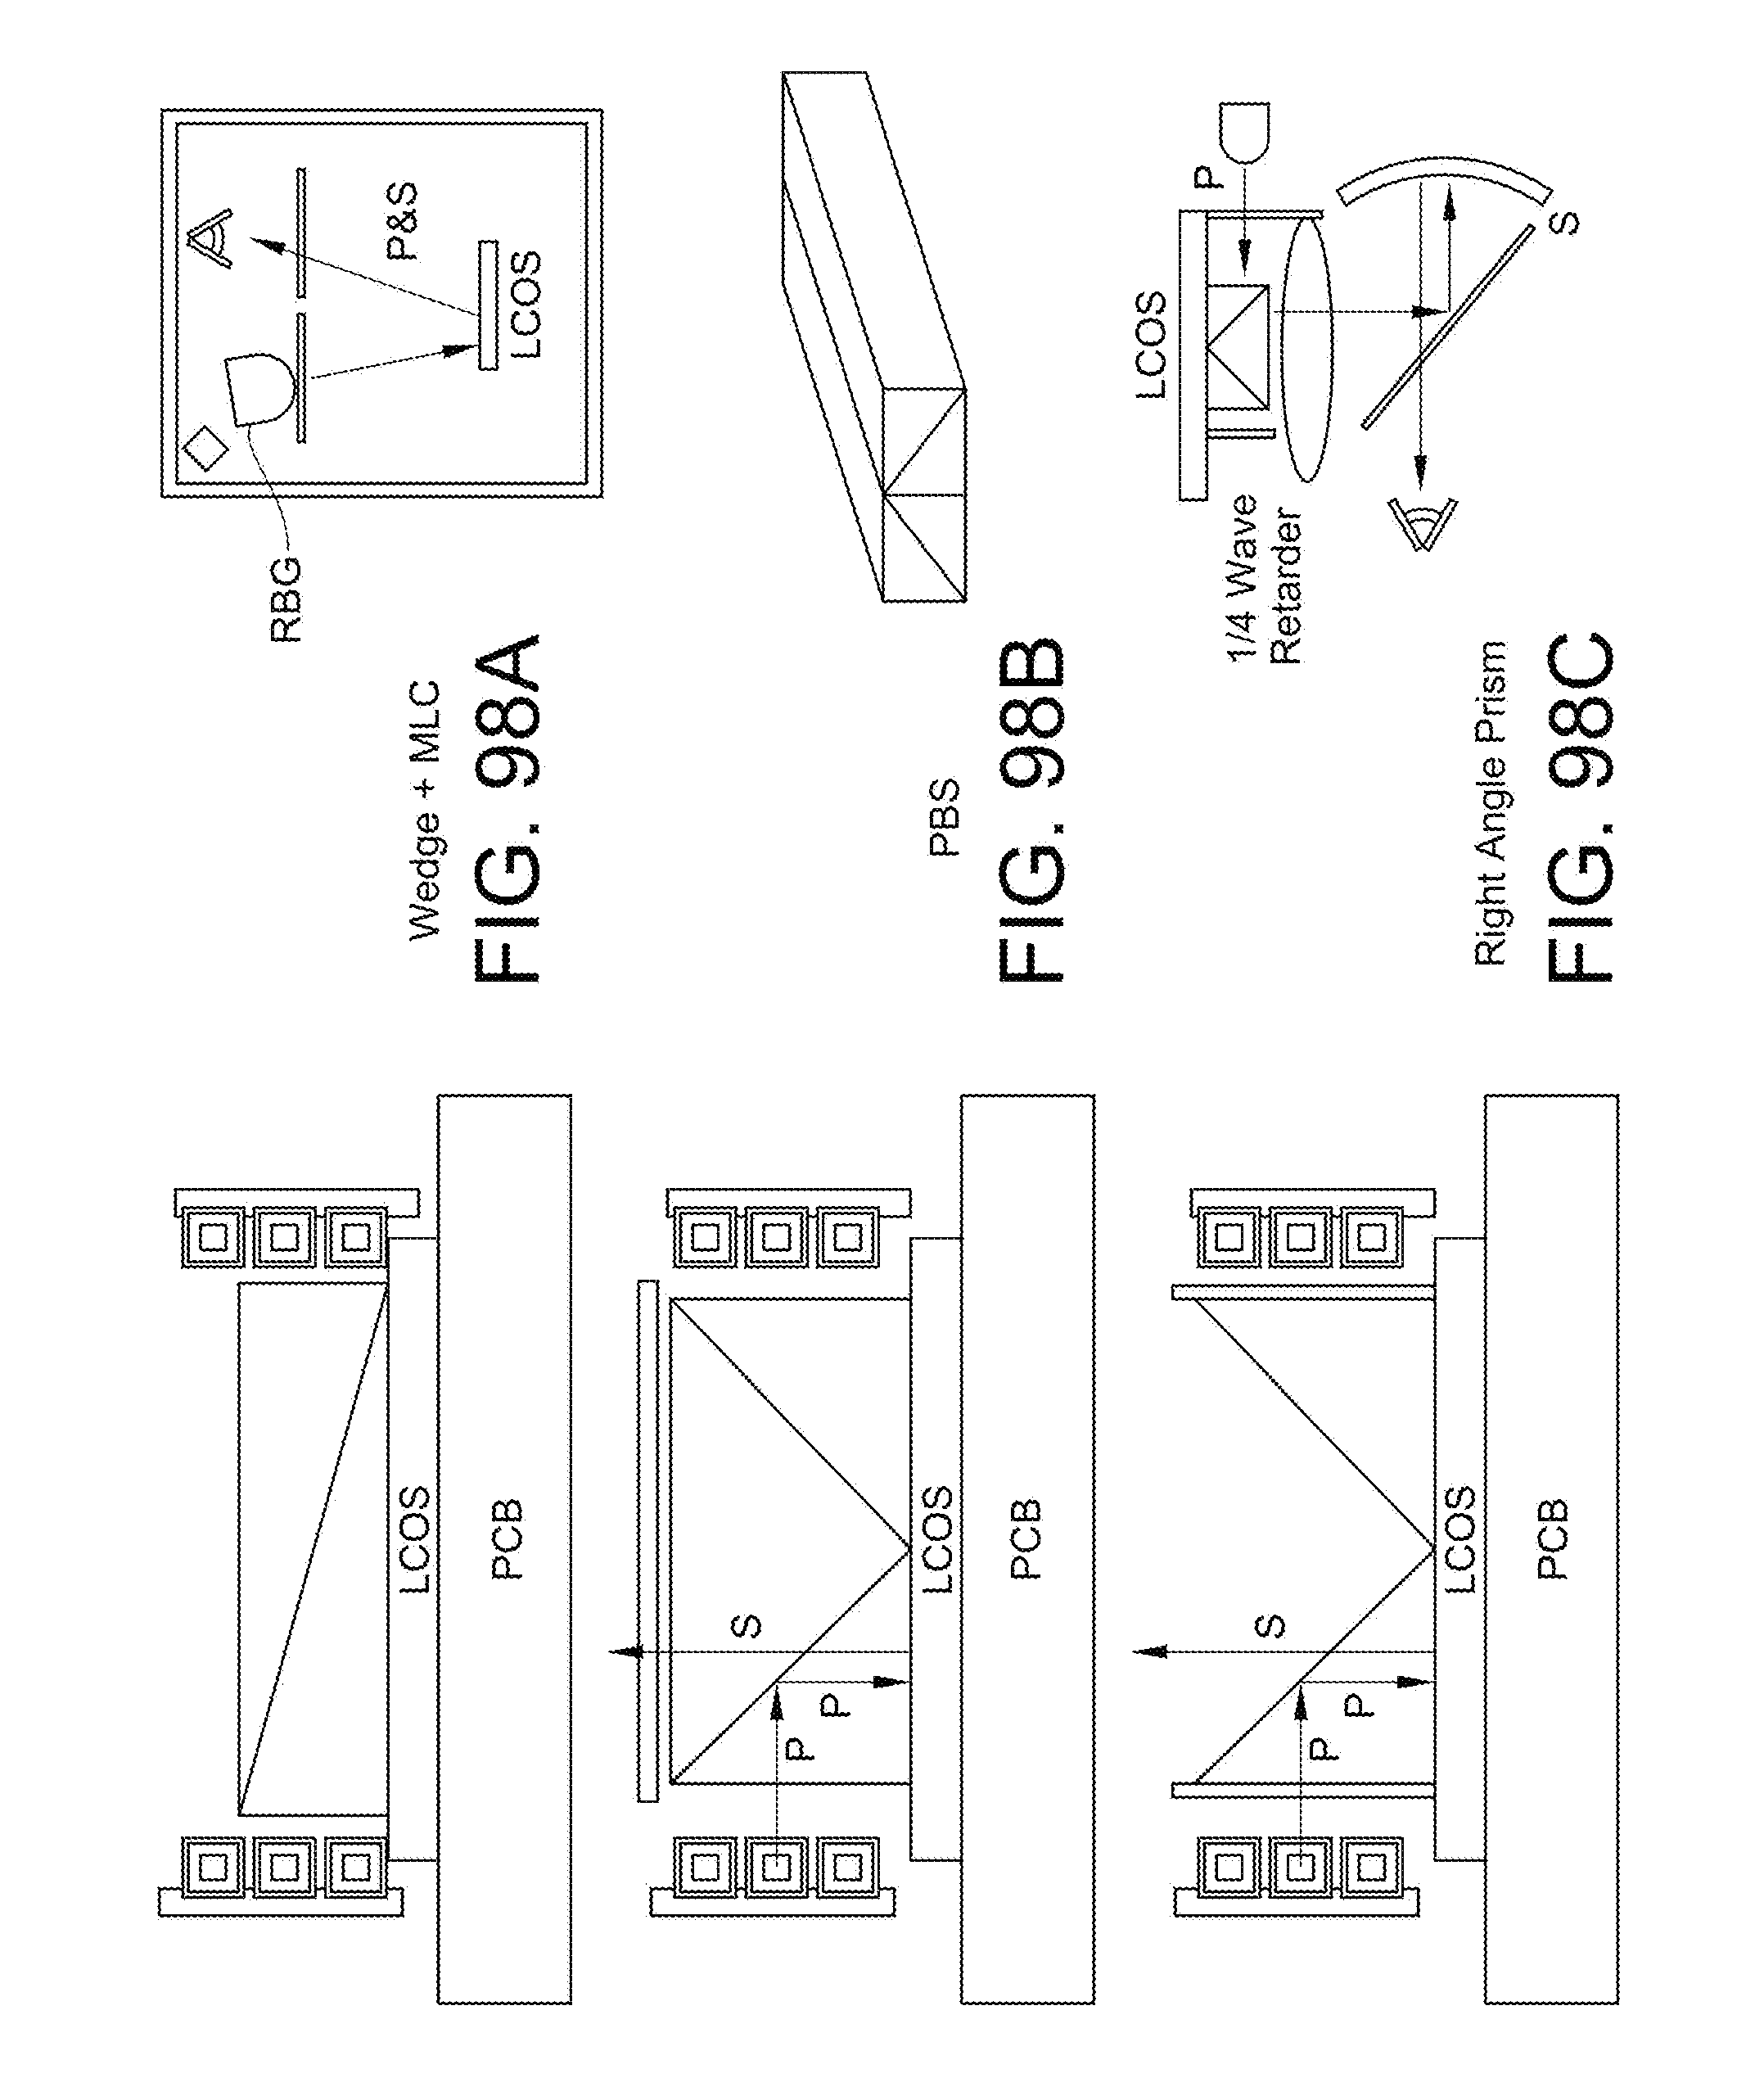 Patent Us 8482859 B2 For 3g Repeater Multilayer Printed Circuit Board Fabrication Design Images